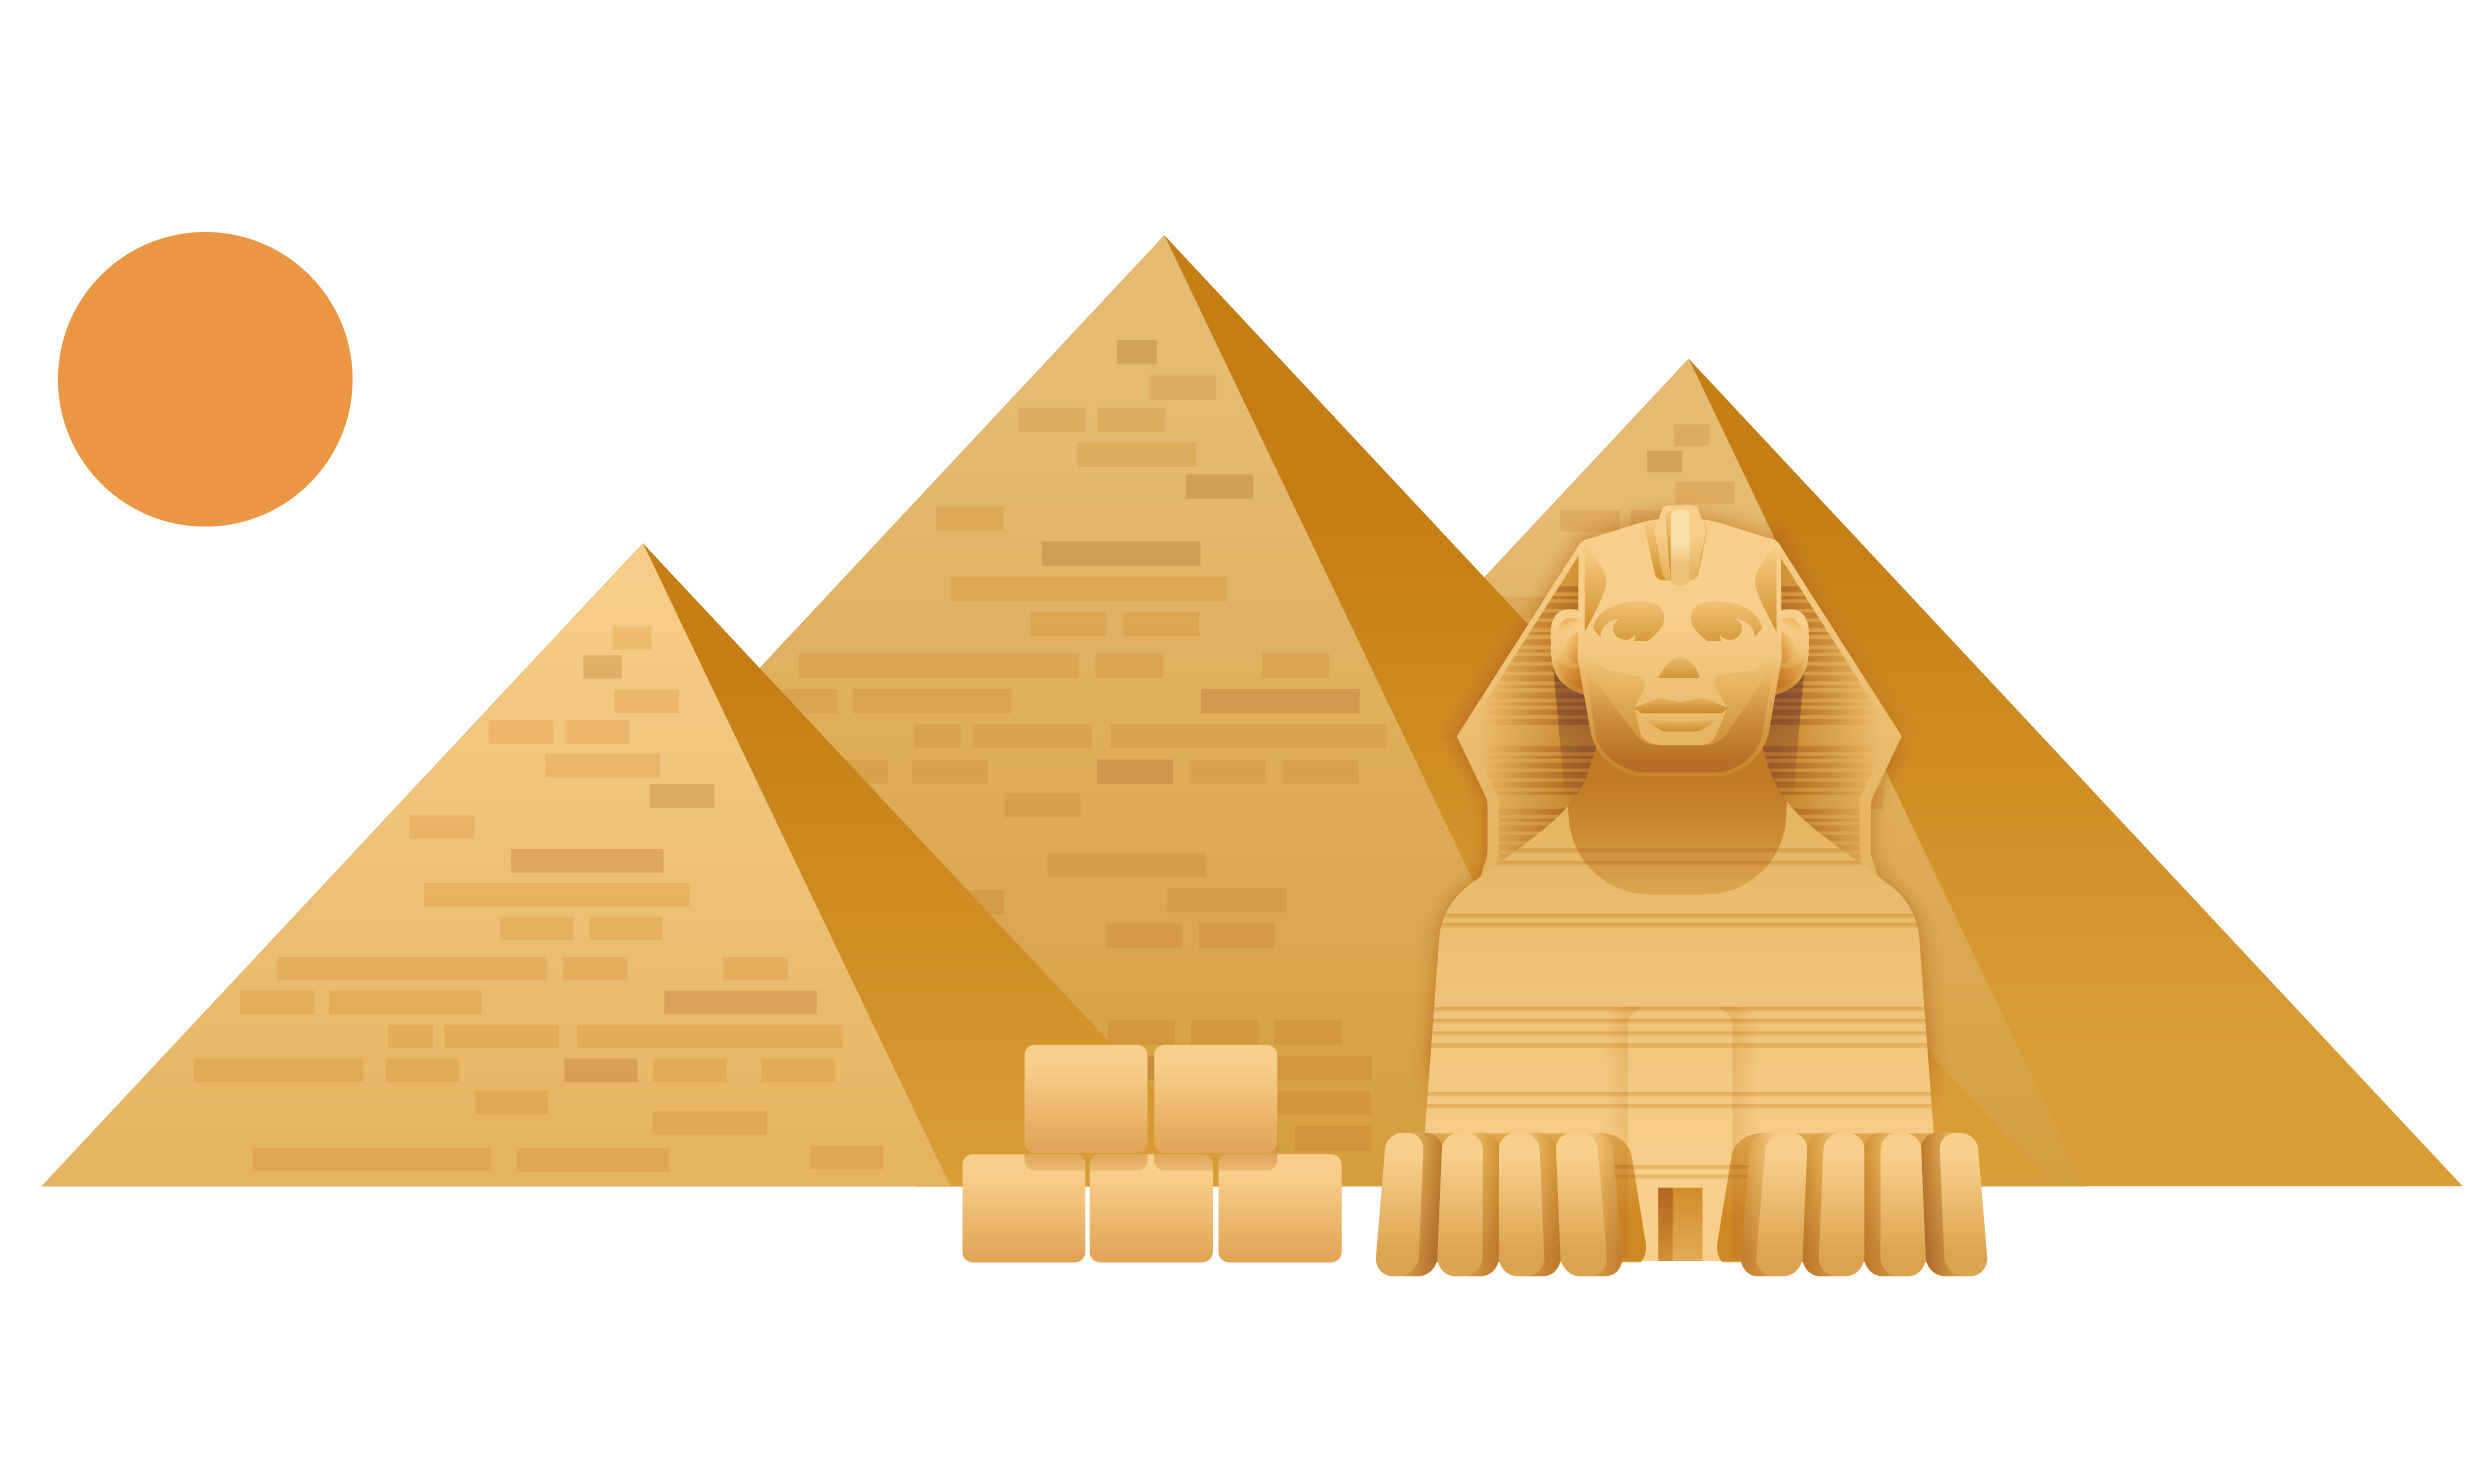 Great Sphinx of Giza Great Pyramid of Giza Egyptian pyramids.